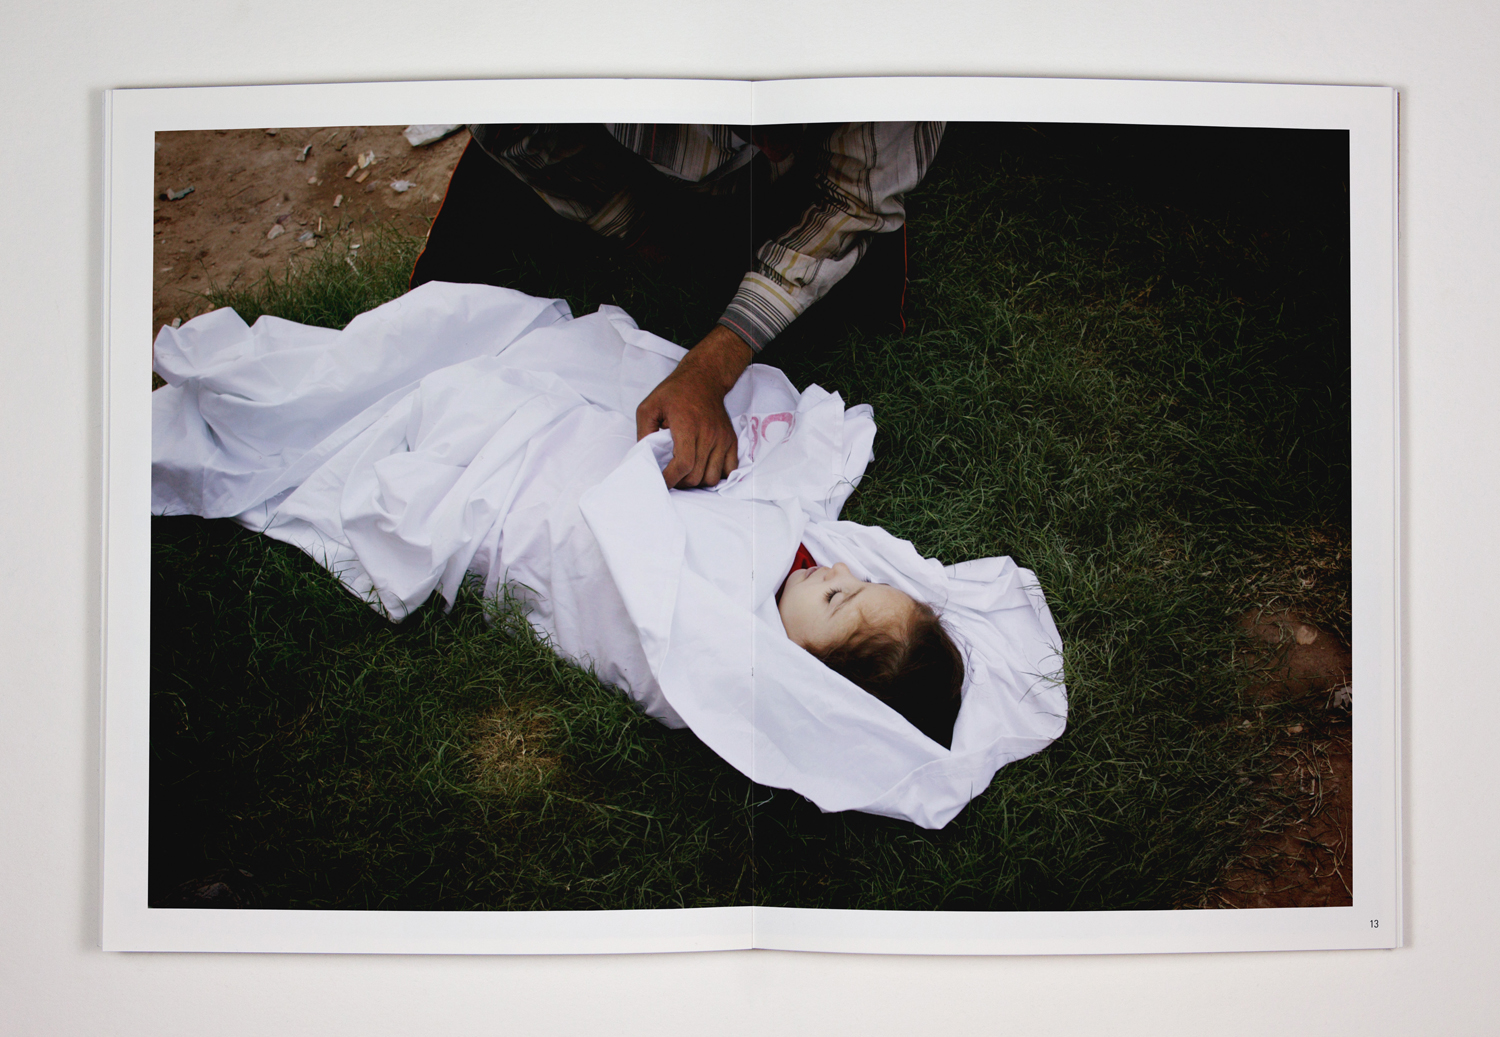 31. A young girl named Sahra was among the victims of the Kadhimiya stampede. An uncle stayed with the dead child while her father went searching for his wife – her mother – who was still missing. 31. Aug 2005. Baghdad, Iraq